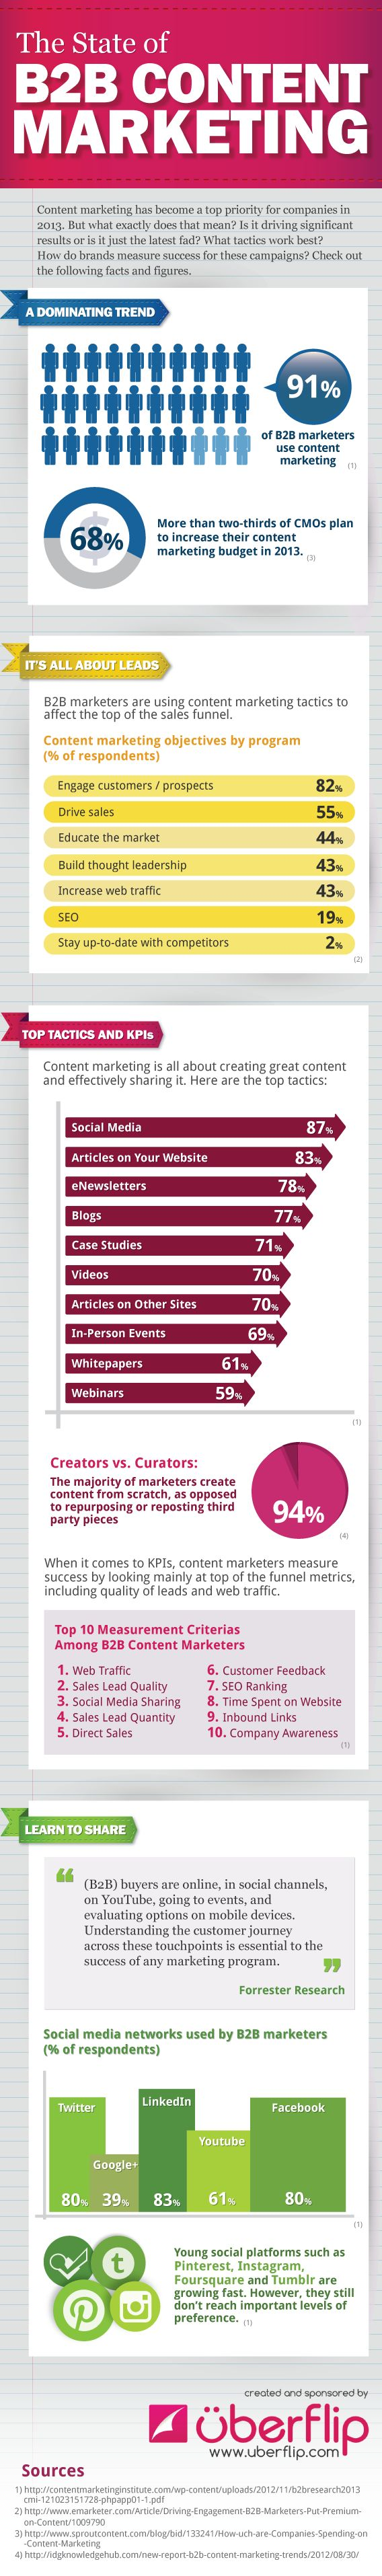 The State of B2B Content Marketing: Tactics, Sharing Tools and Metrics [INFOGRAPHIC]